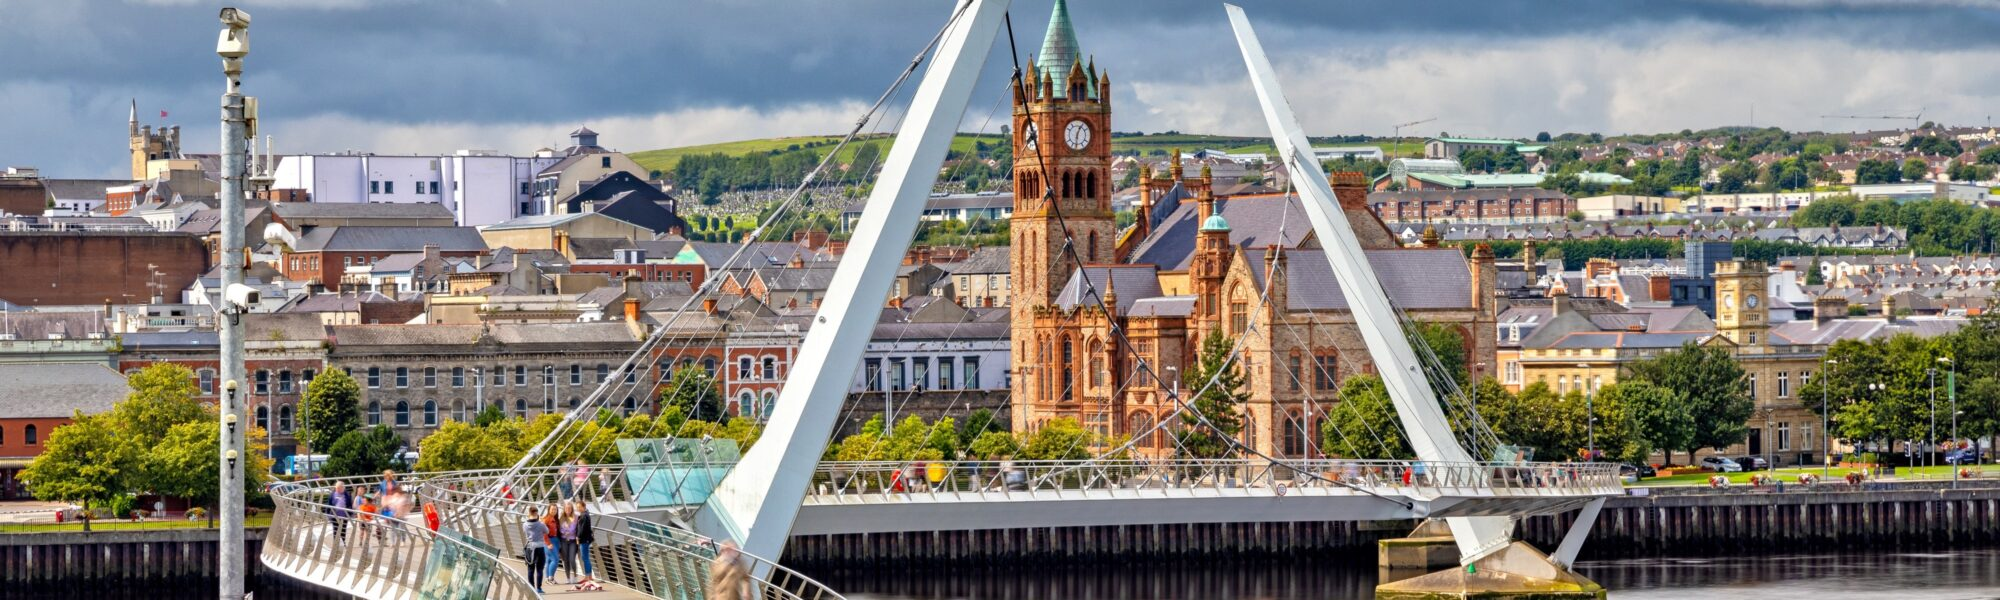 Derry et le Peace Bridge - © susanne2688